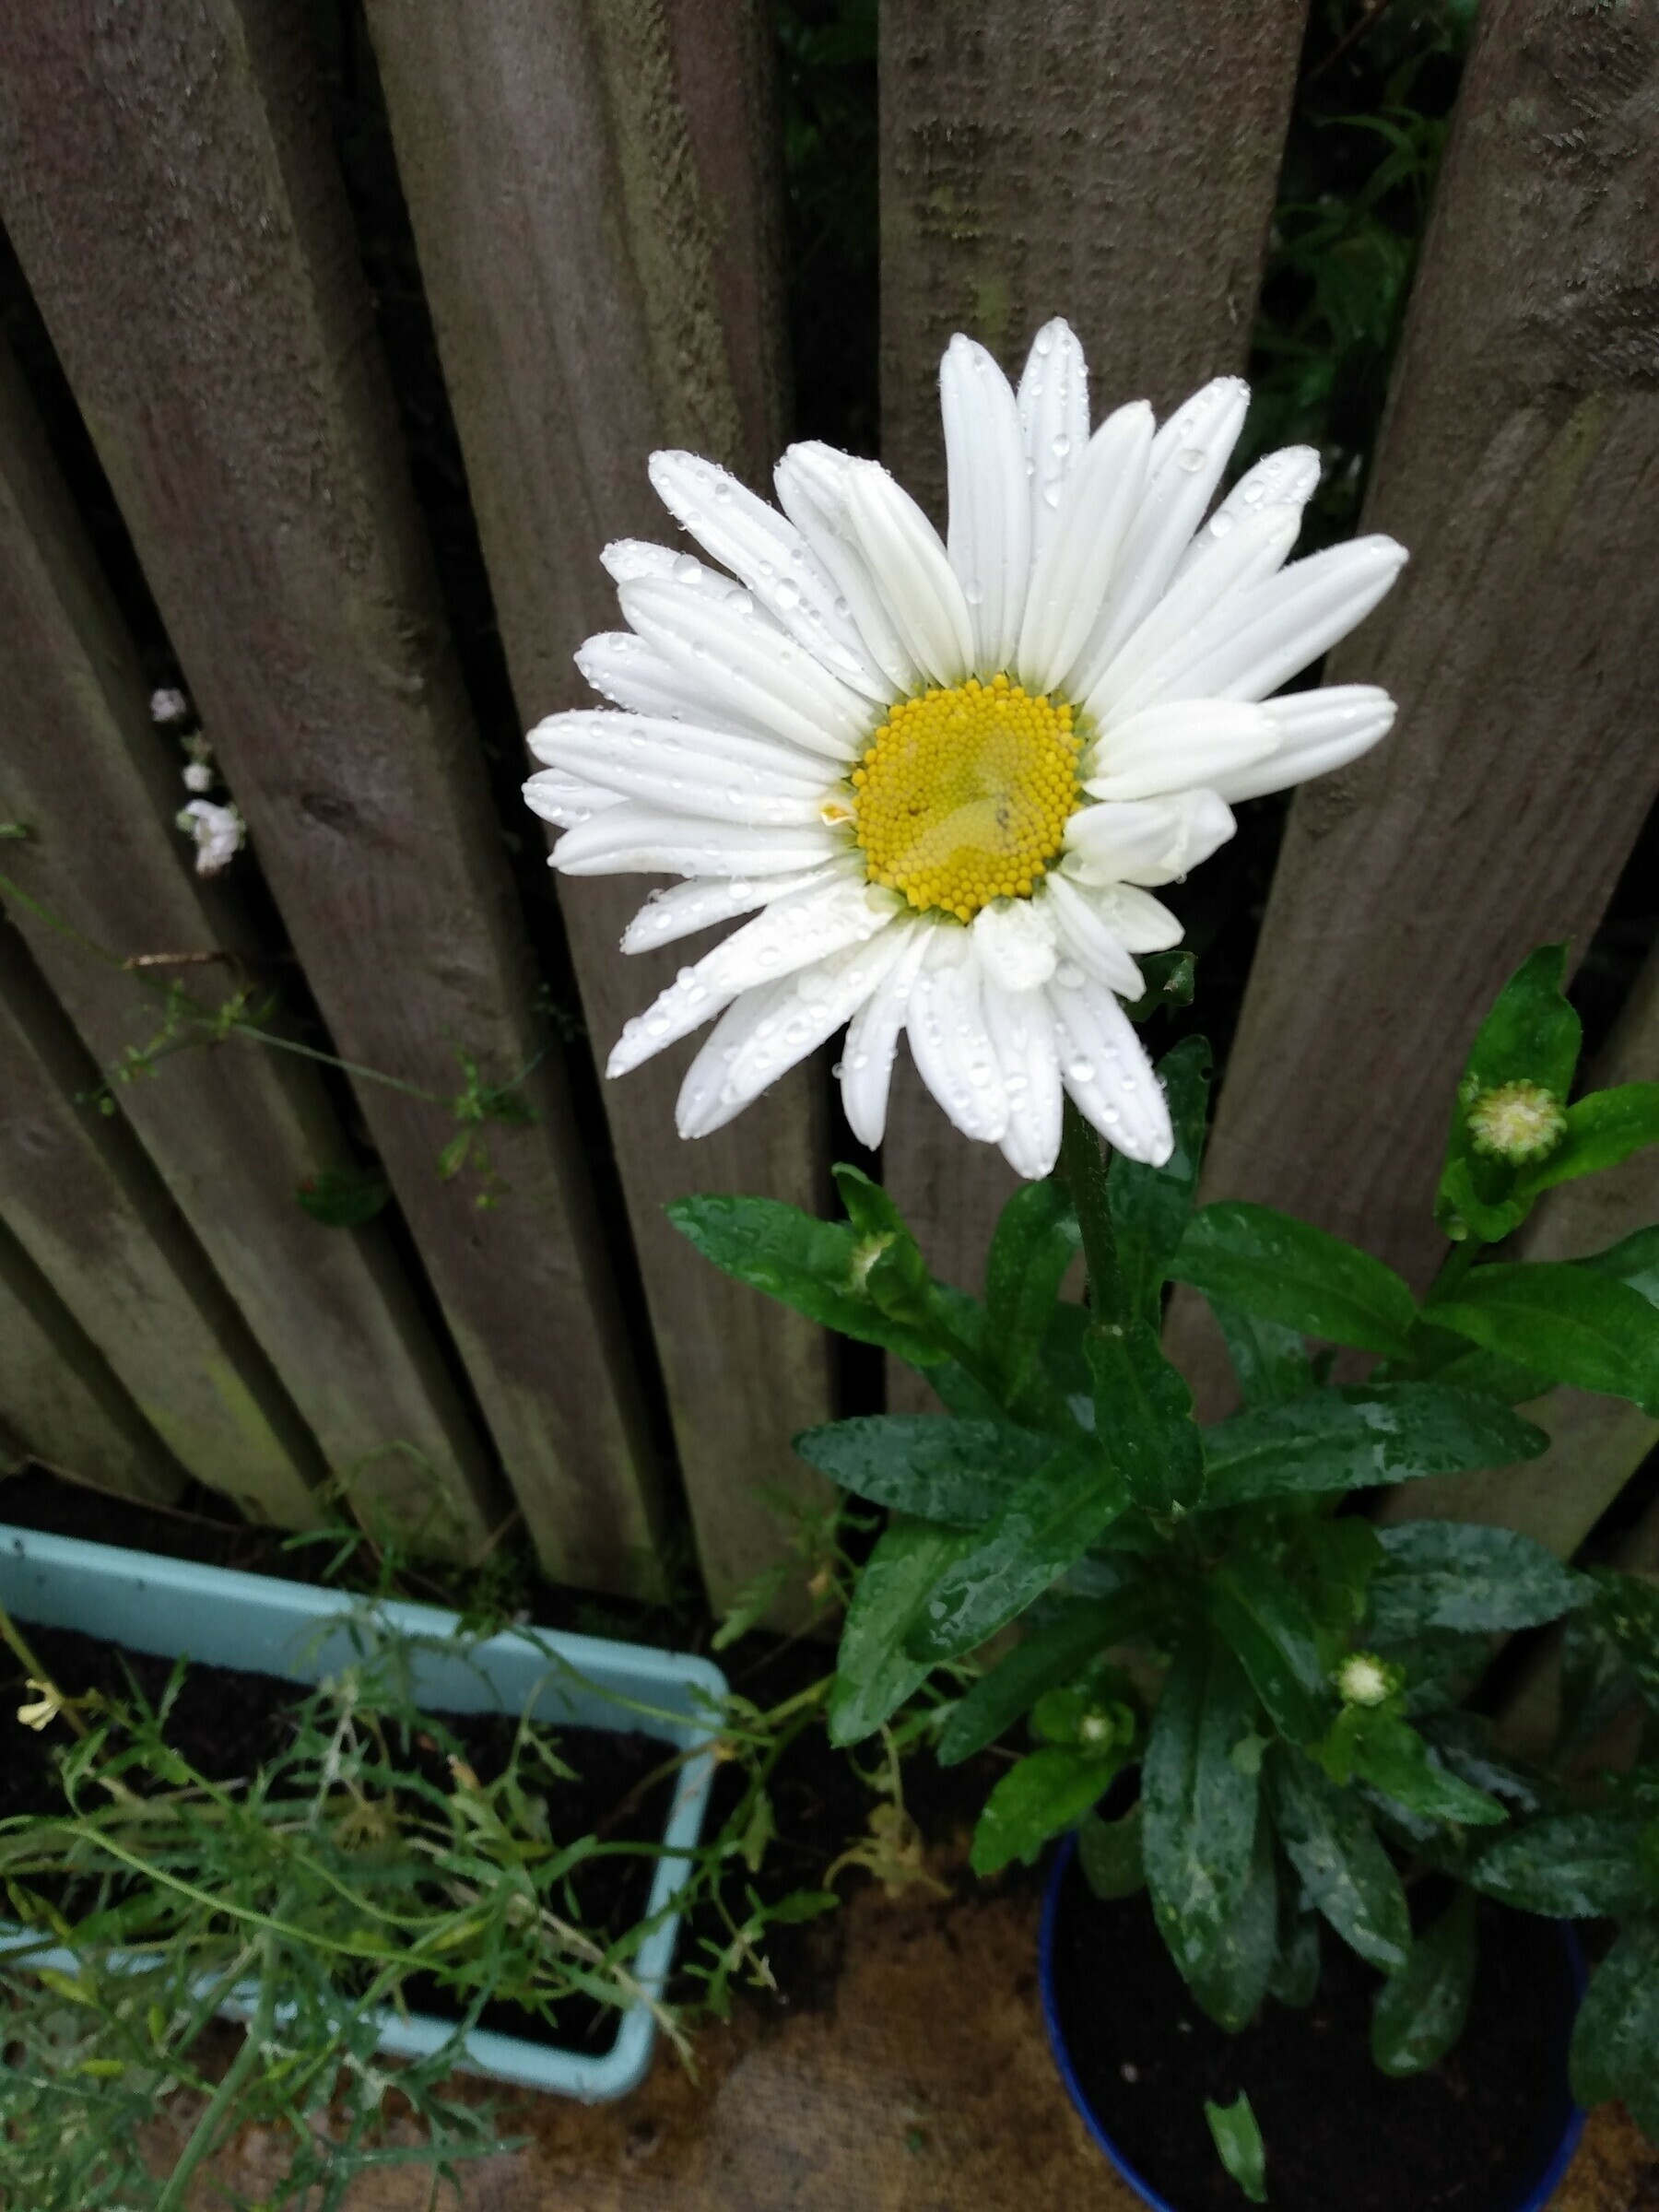 a large white daisy growing in a pot in my yard